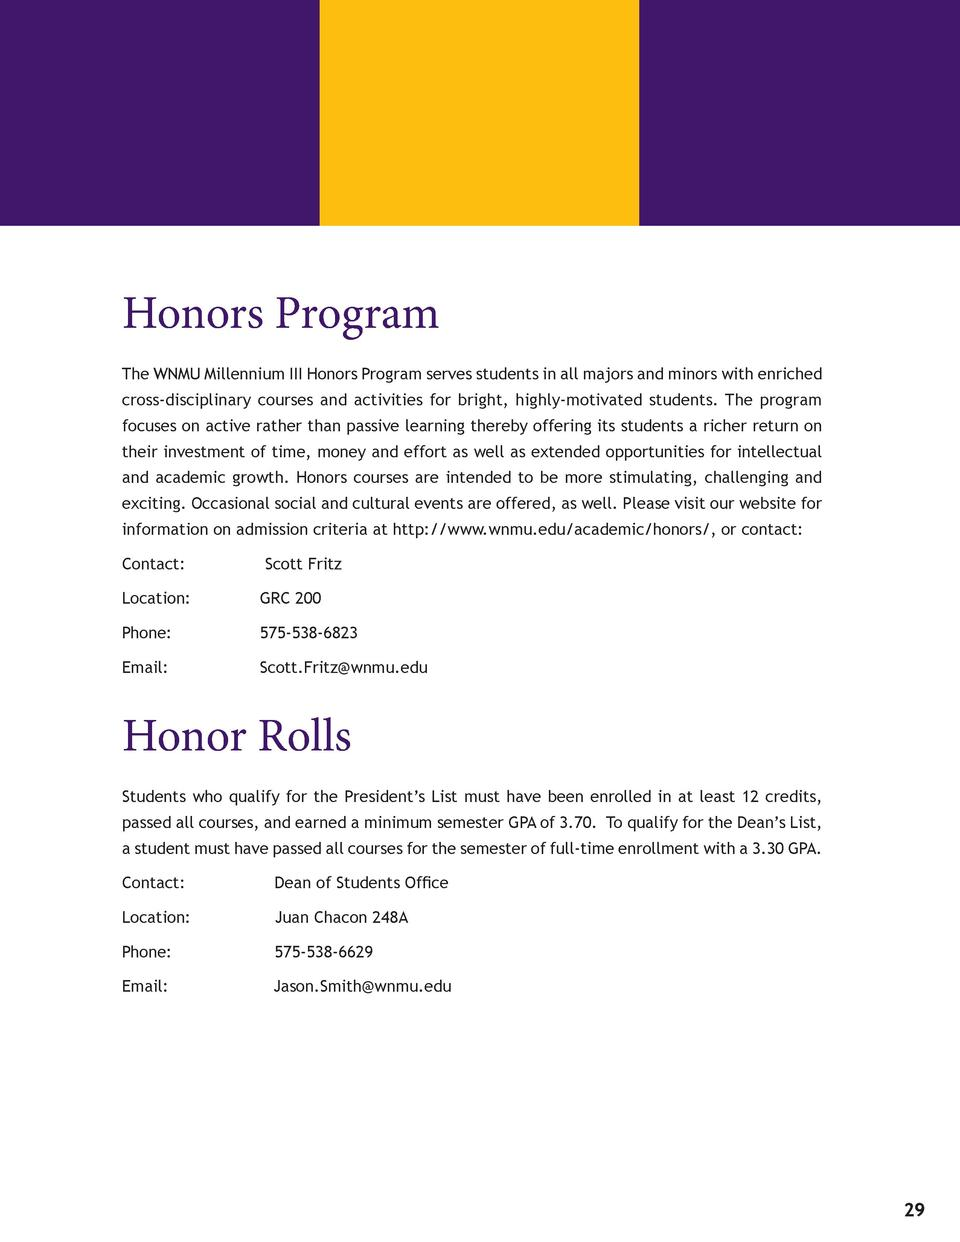 Honors Program The WNMU Millennium III Honors Program serves students in all majors and minors with enriched cross-discipl...